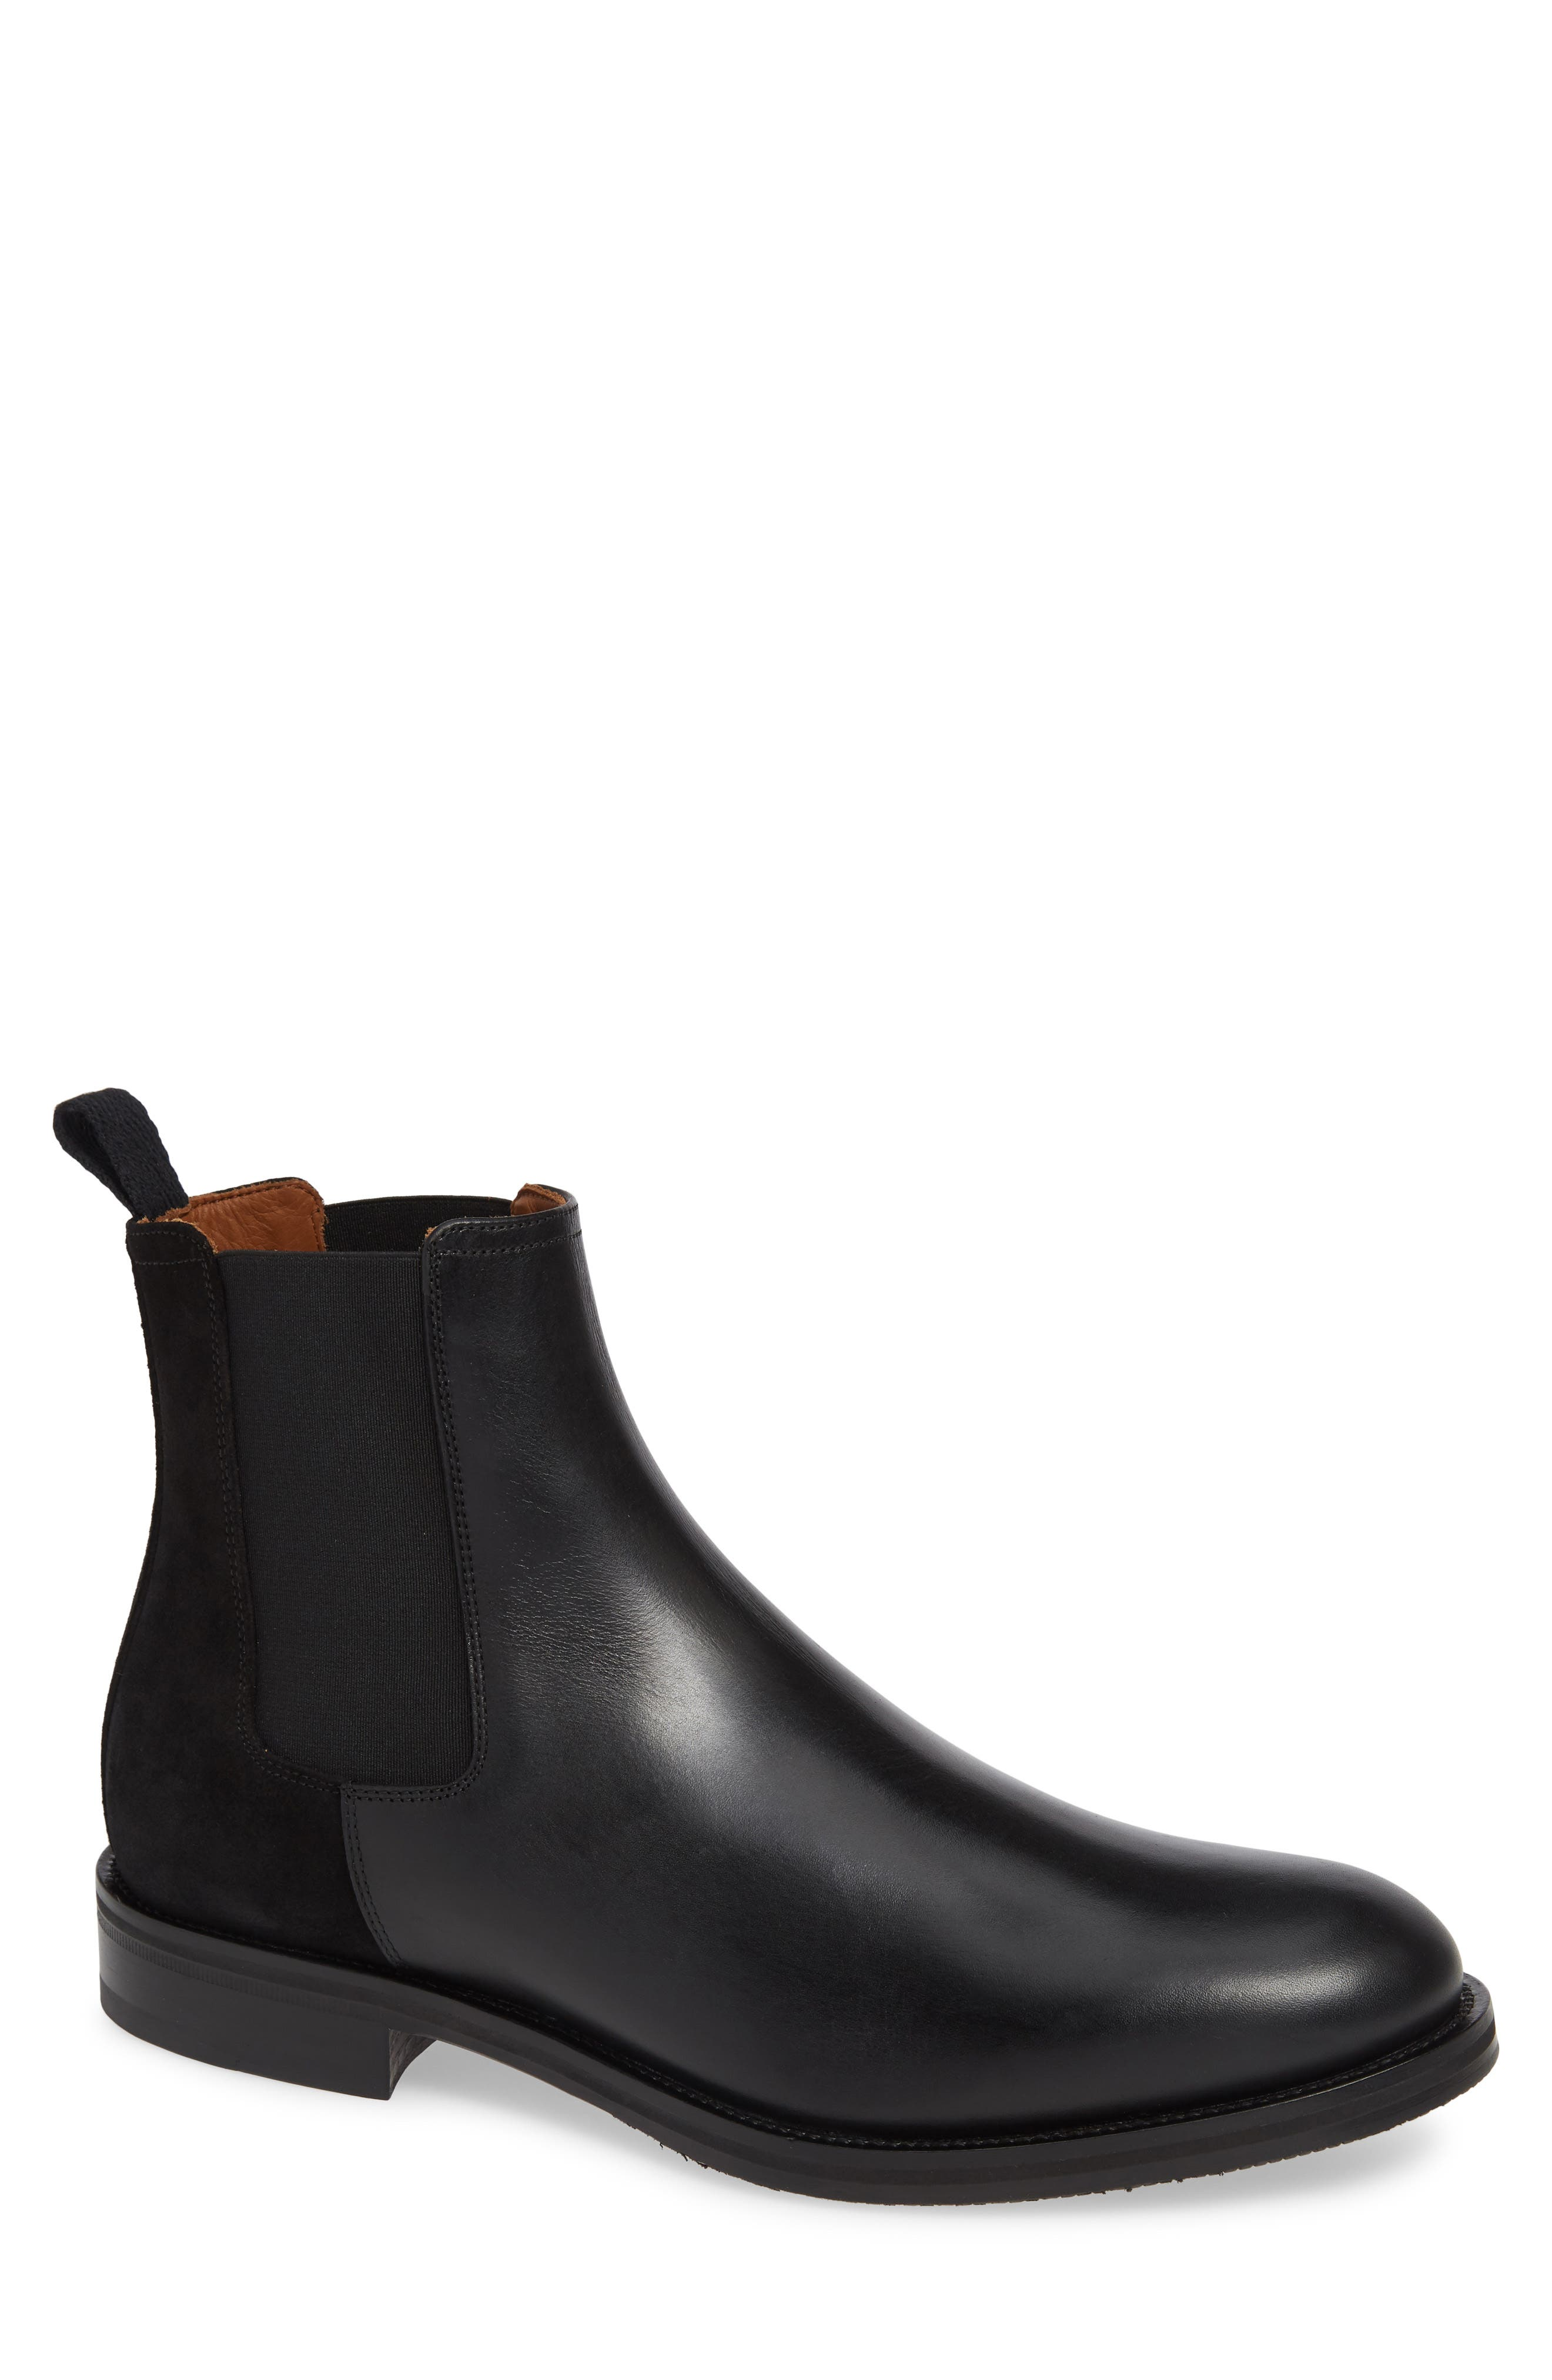 Aquatalia Giancarlo Weatherproof Chelsea Boot, Black